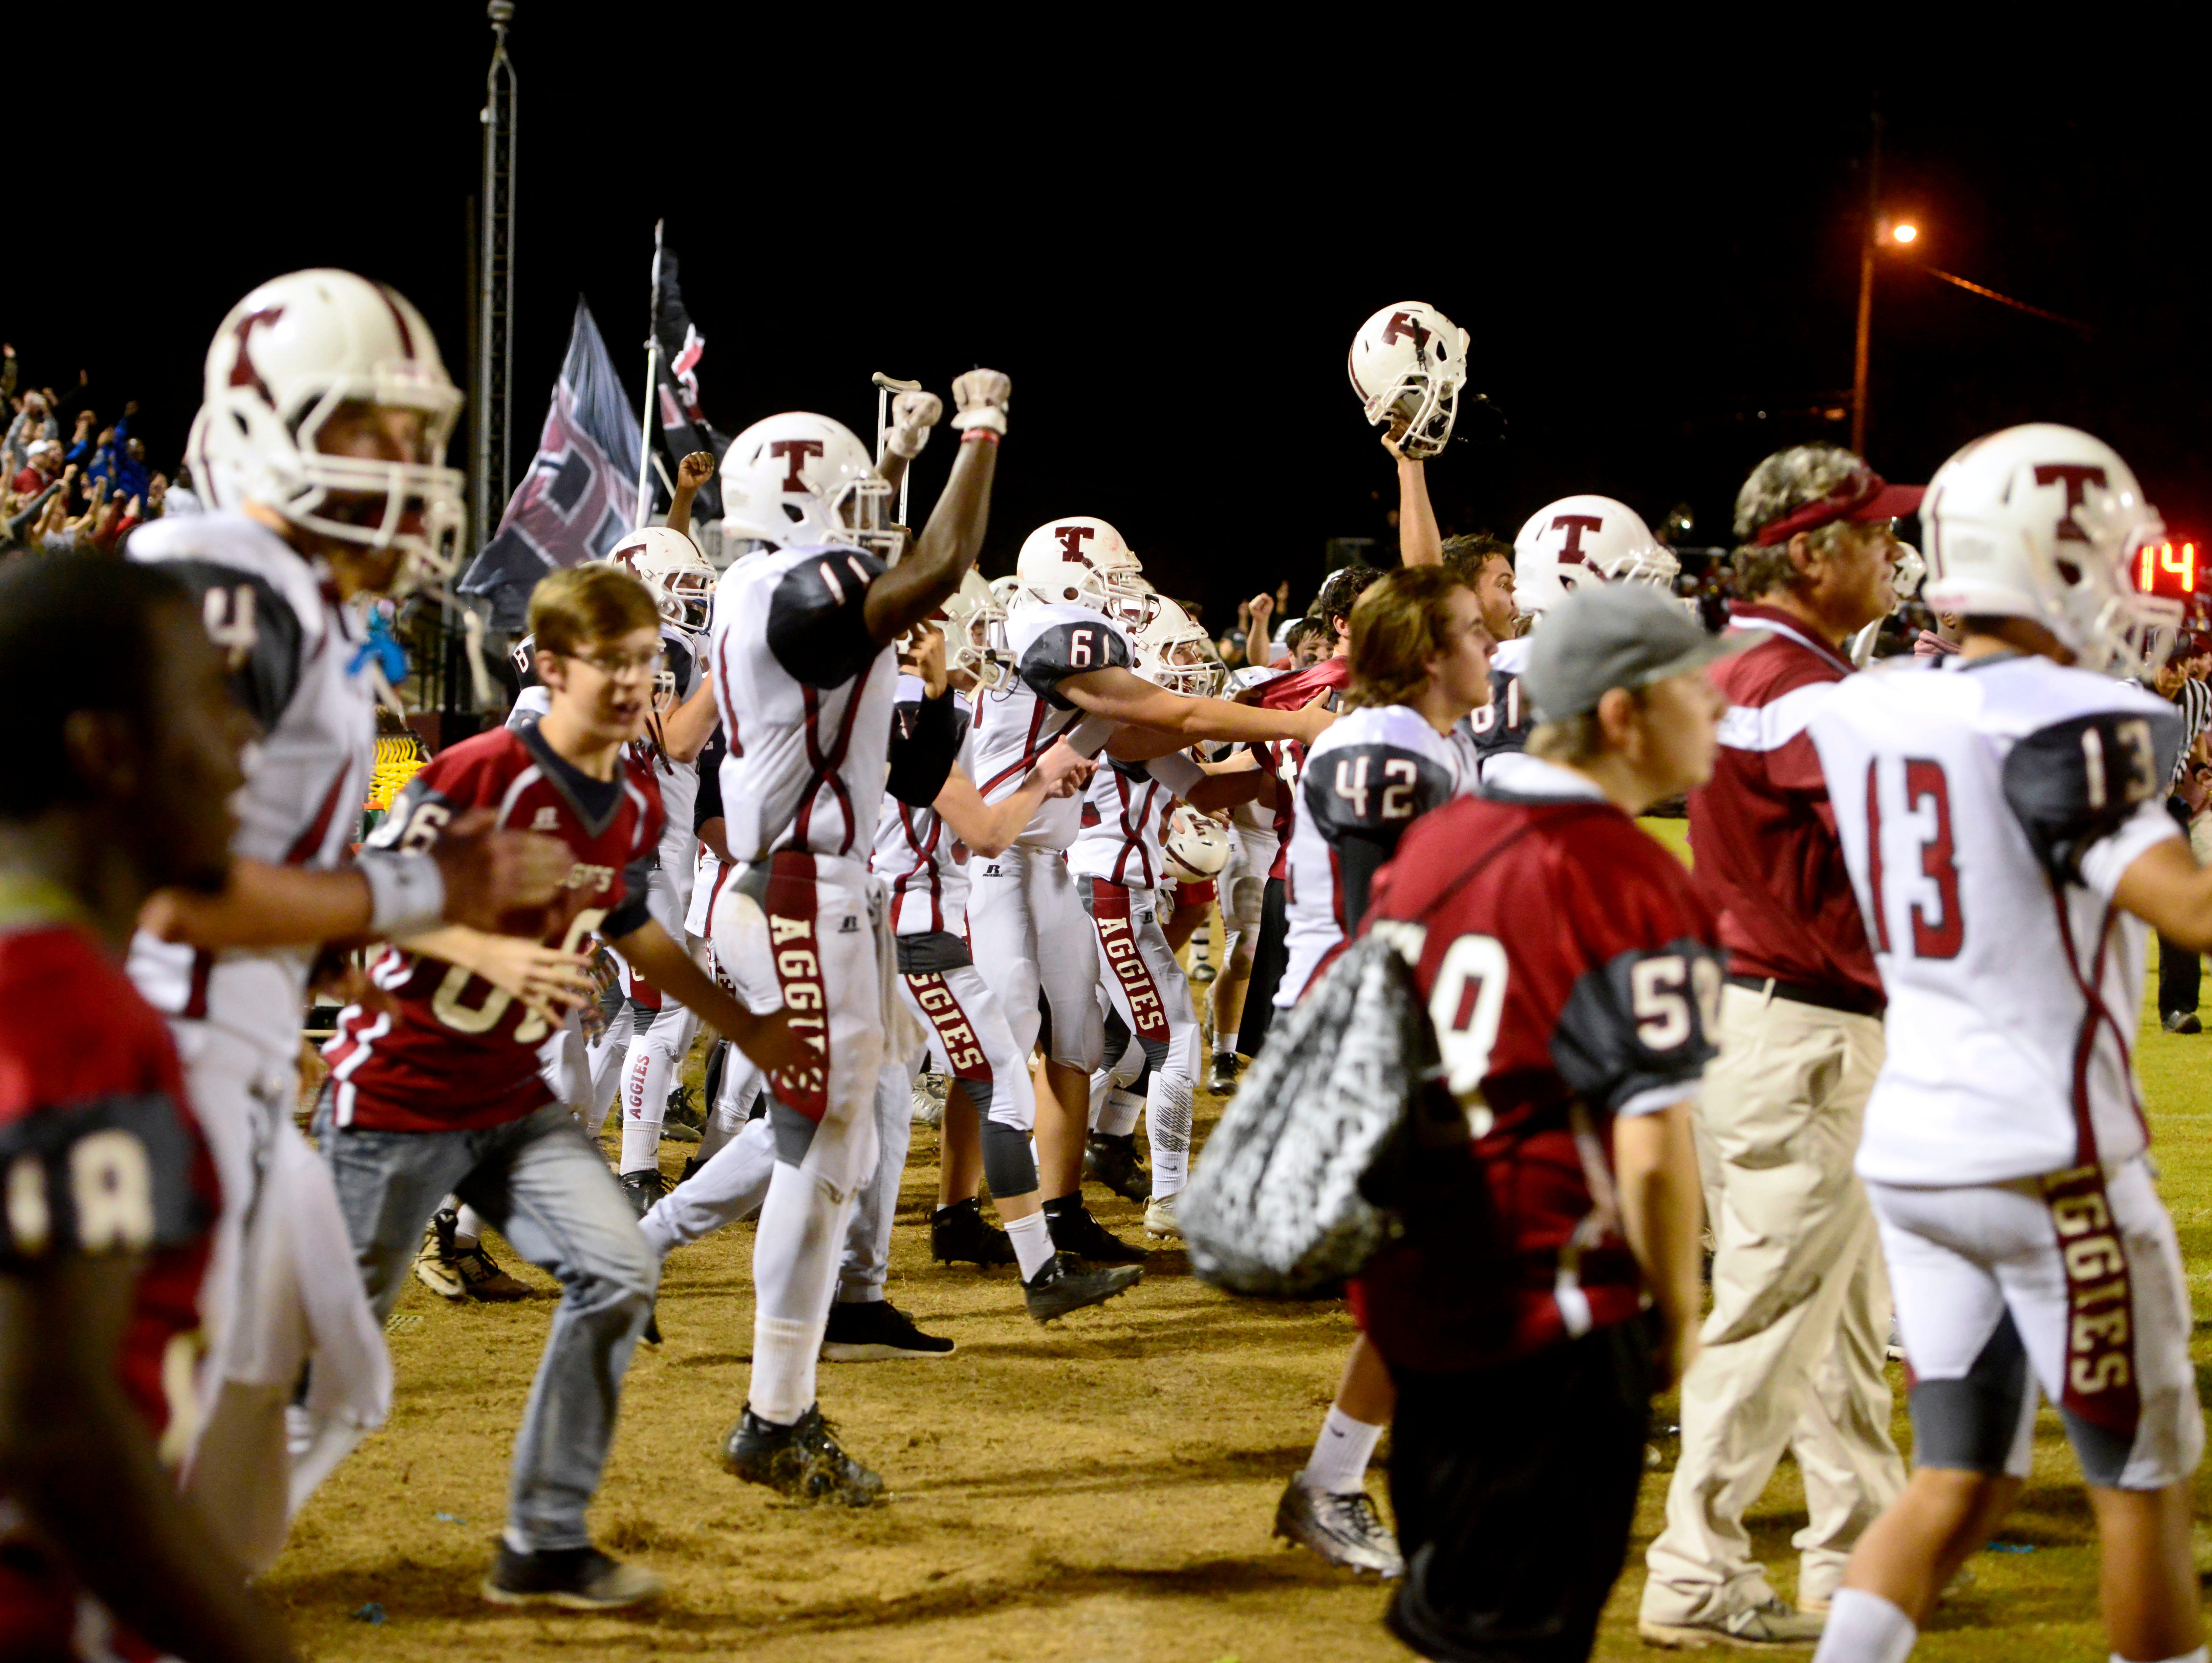 Tate High School players celebrate a close victory, 21-20, over Niceville on Friday and move on to Class 6A state semifinals.